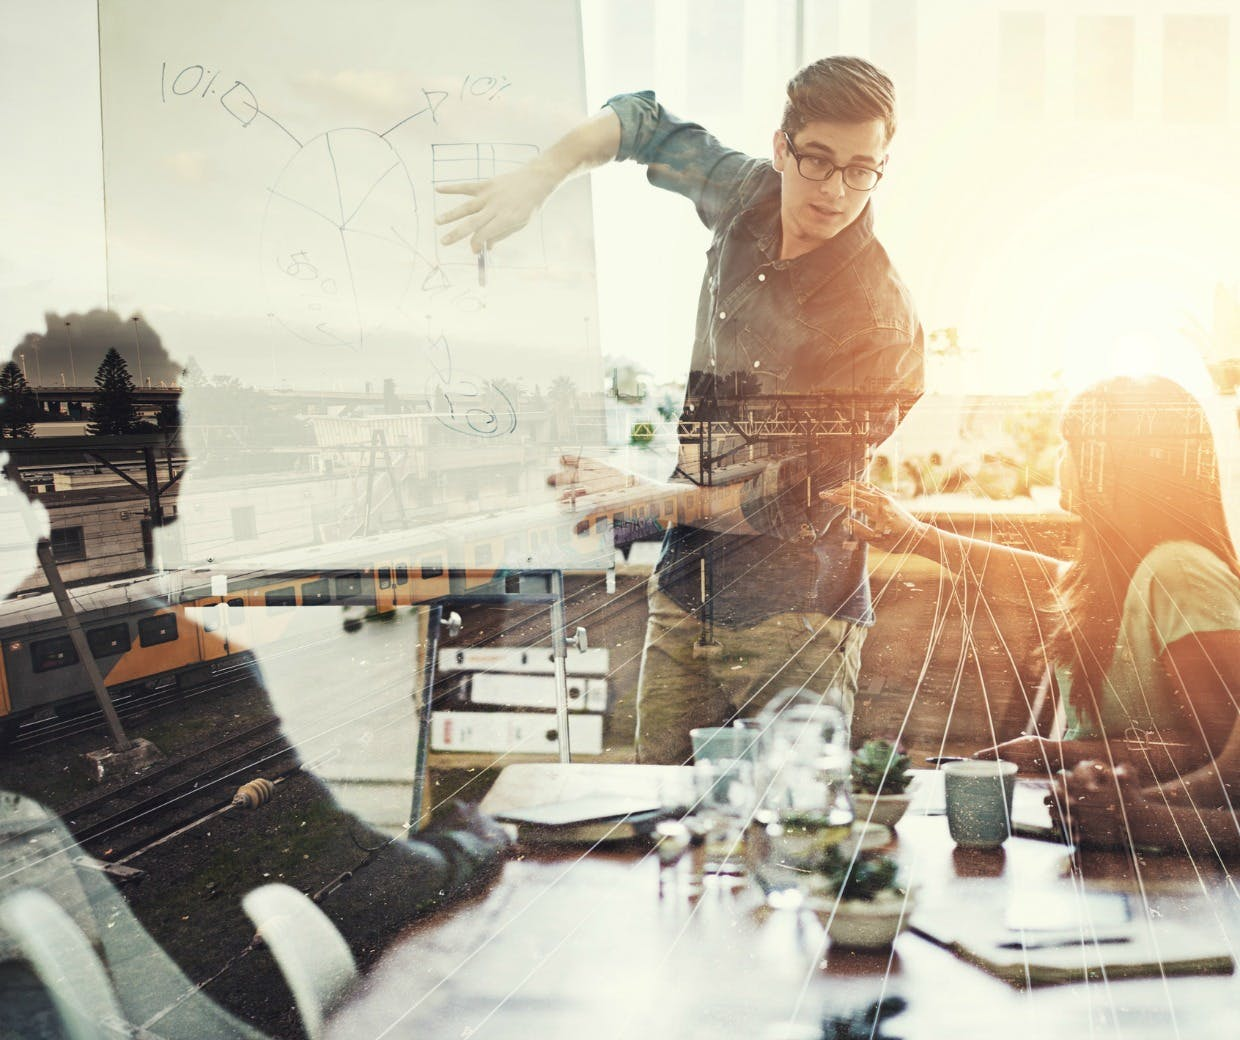 Digital transformation is about more than new technology